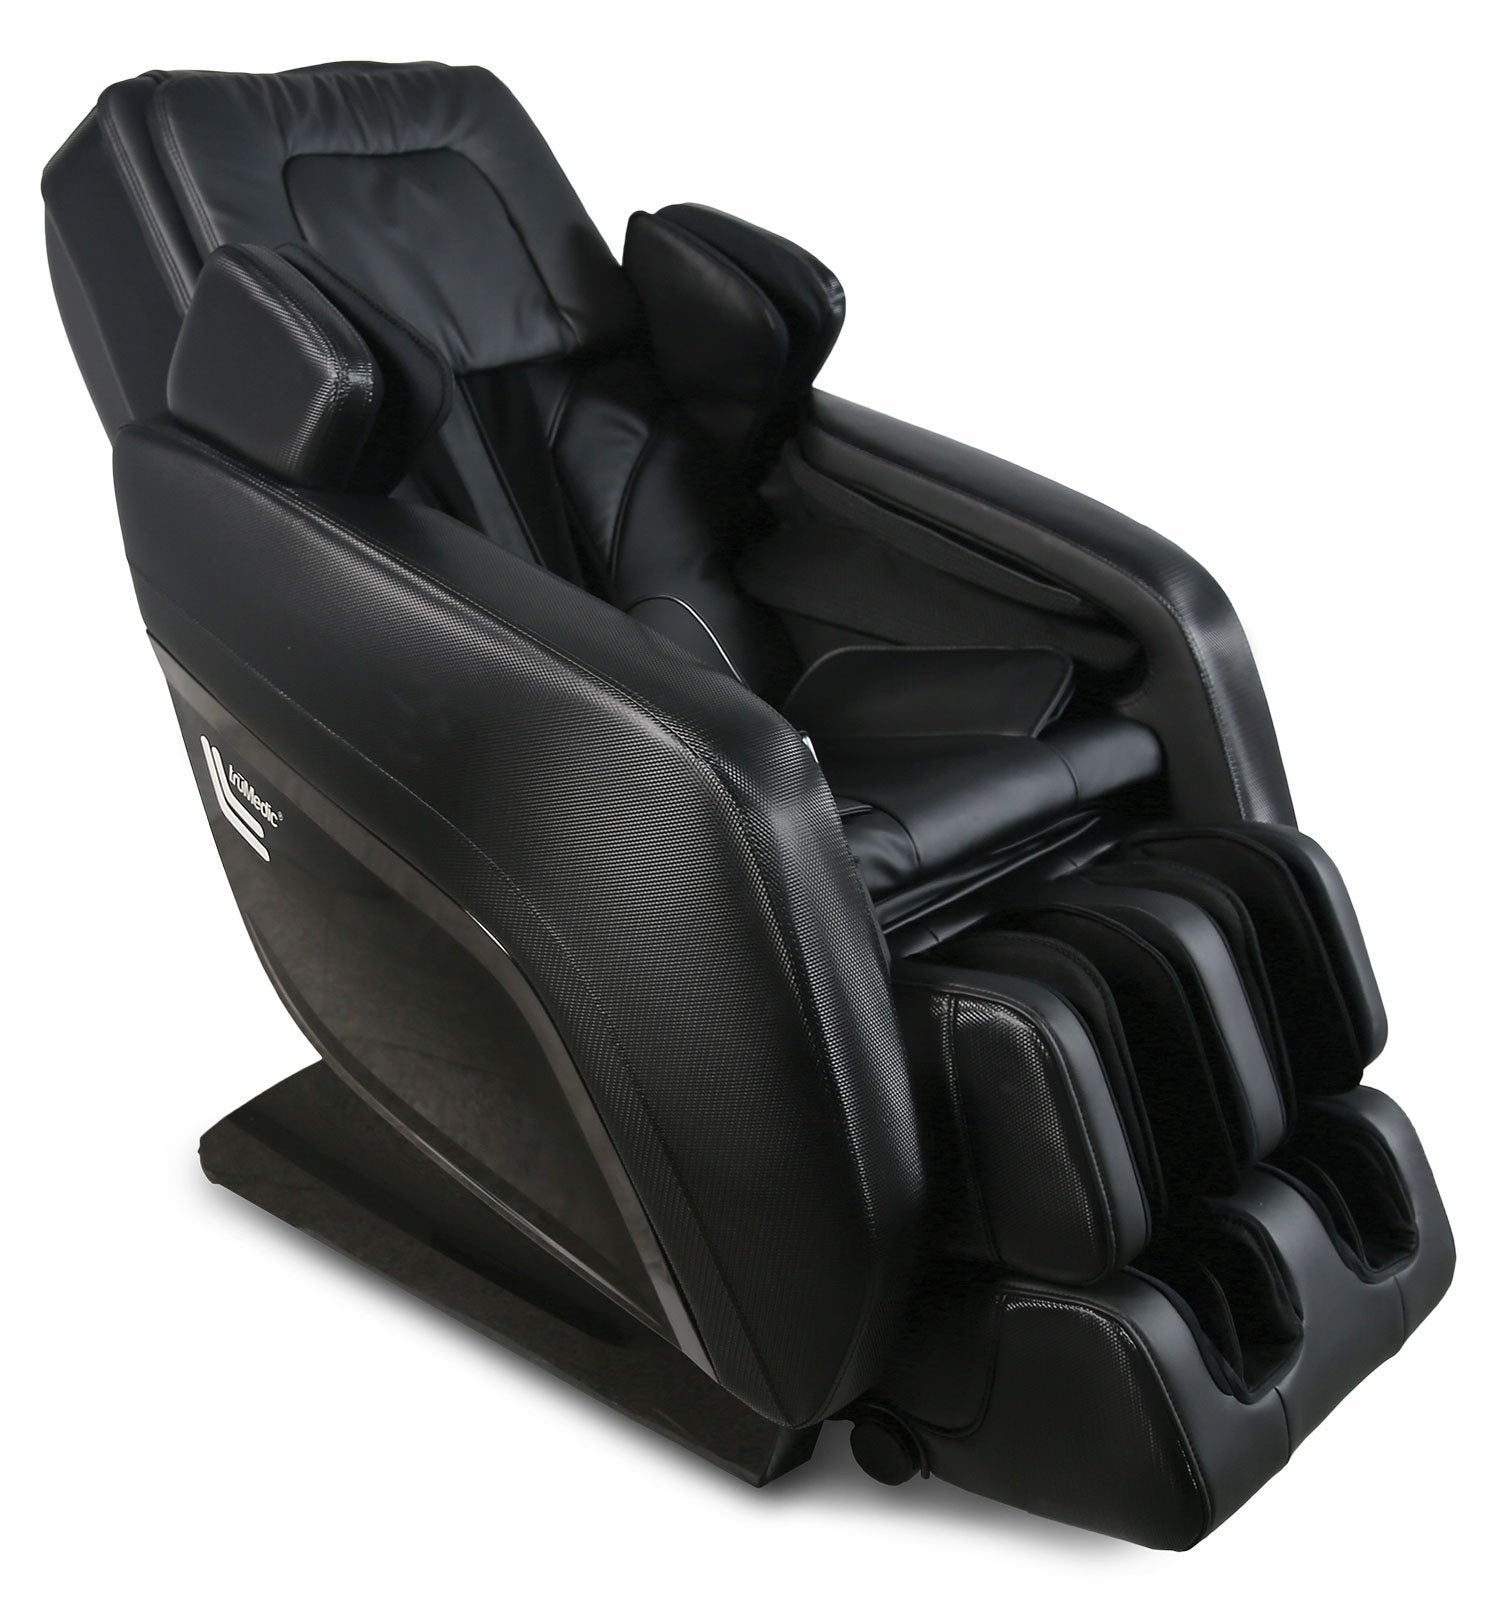 InstaShiatsu Massage Chair MC 1000 – truMedic